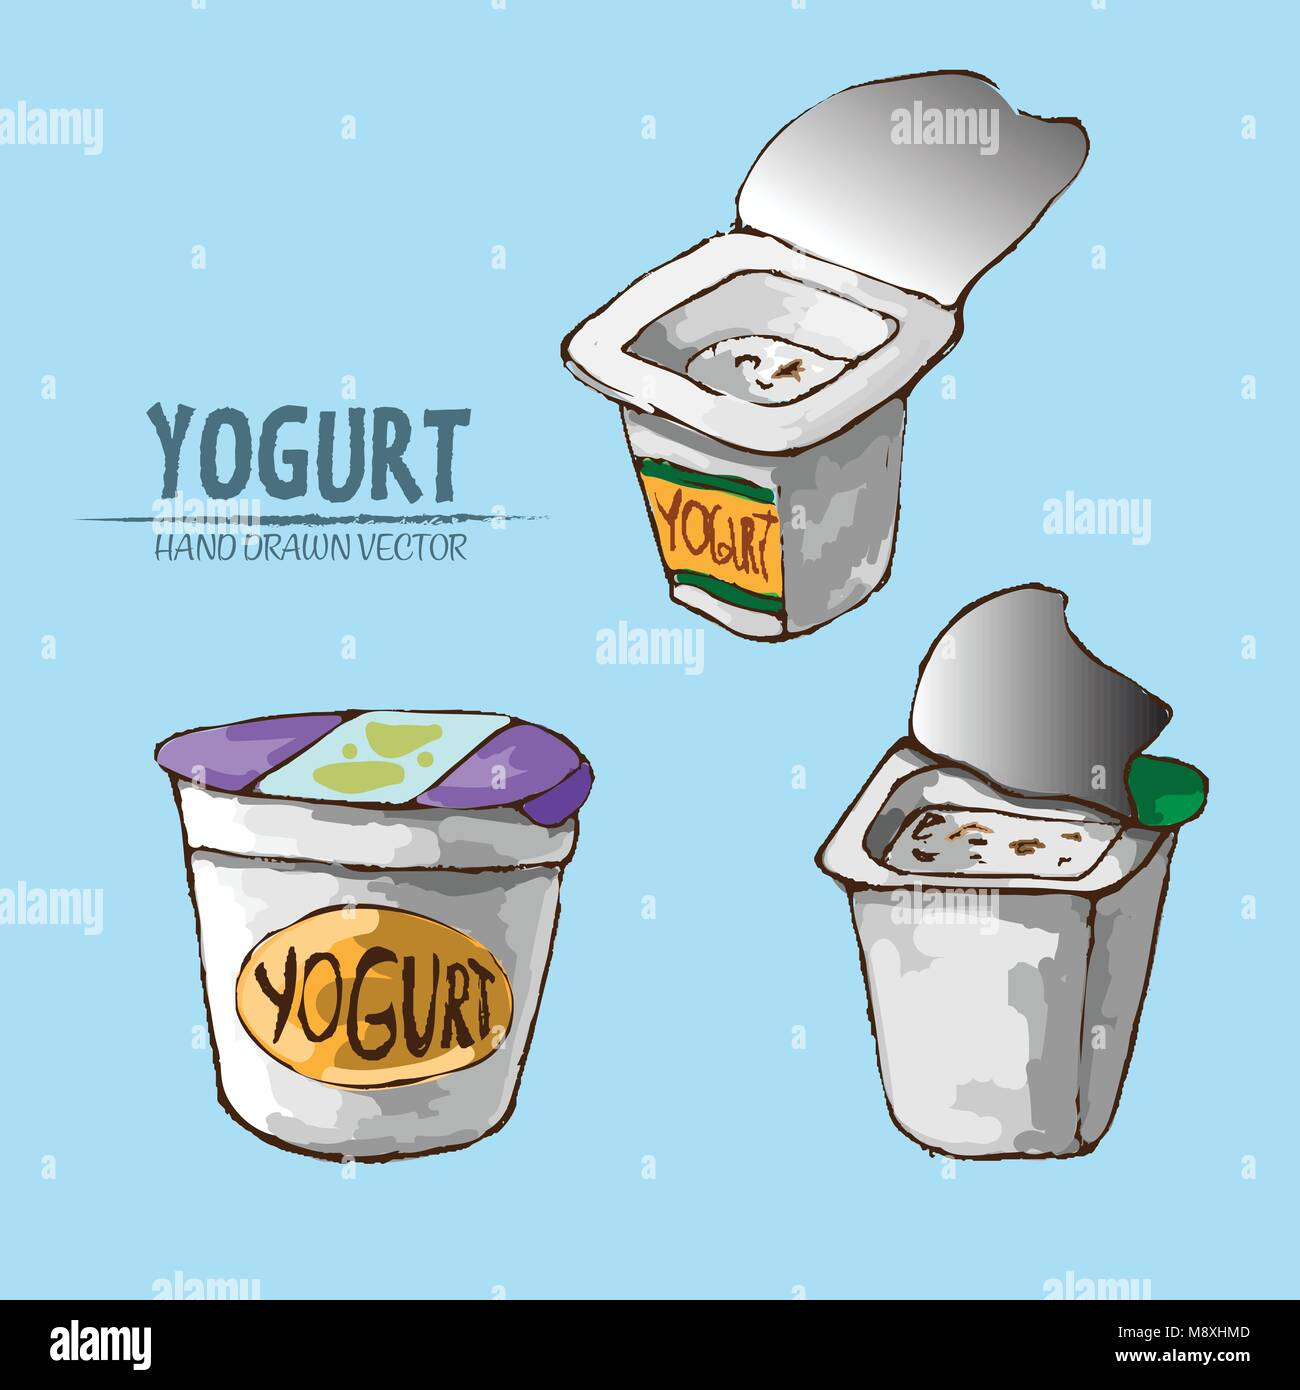 Yogurt Line Drawing : Cartoon illustration fresh fruit yogurt stock photos